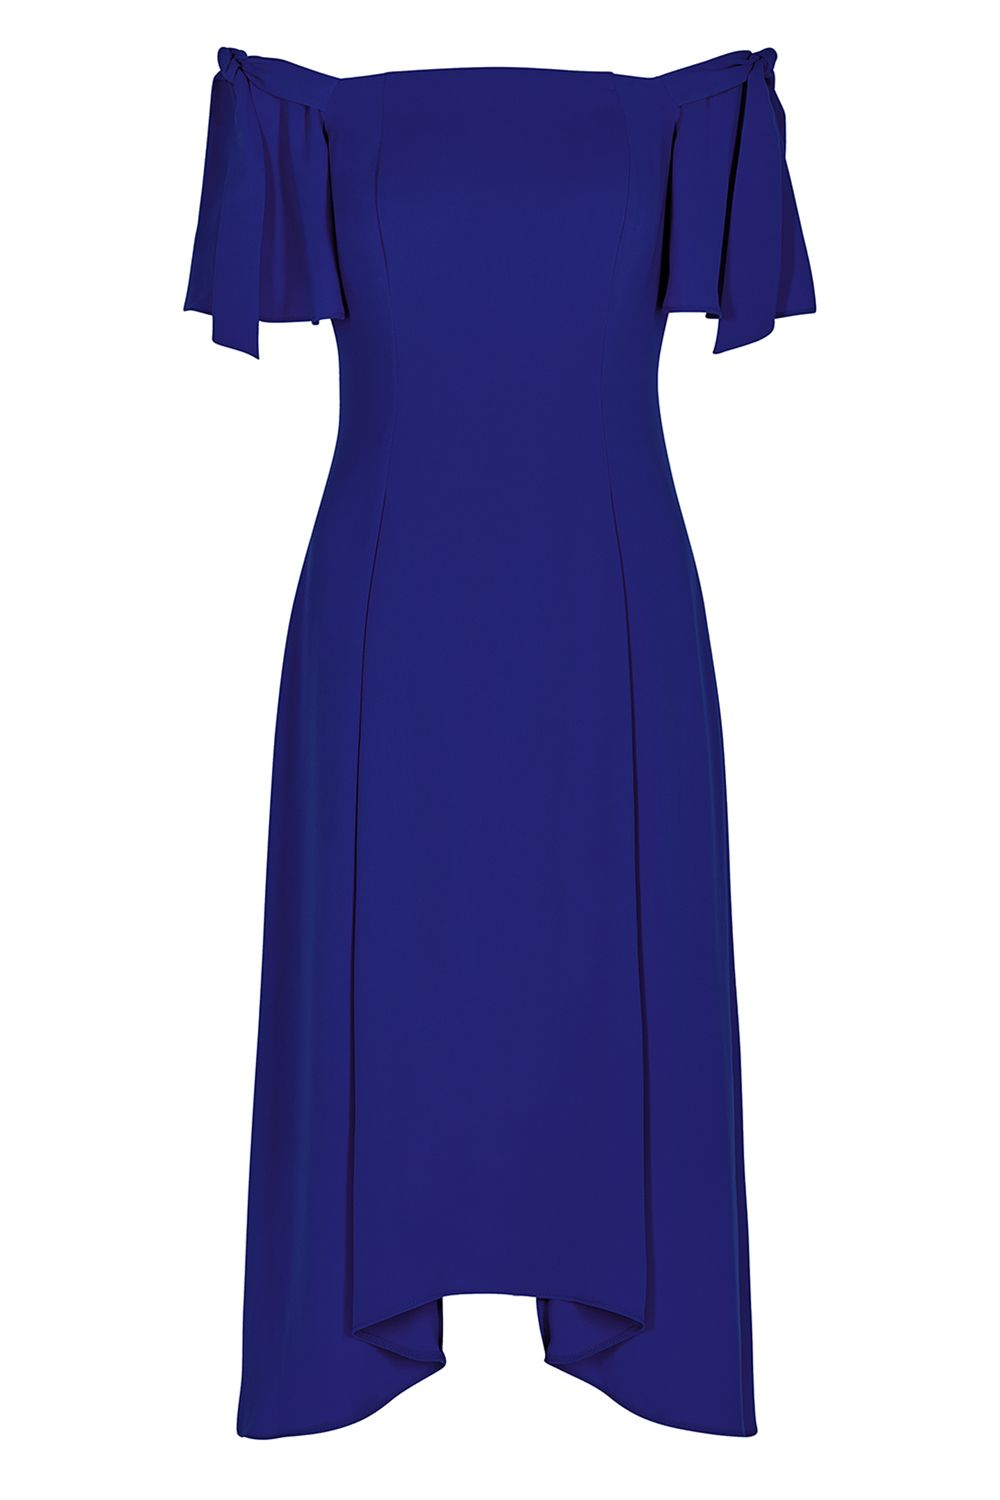 Coast Bonnie Bardot Midi Dress, Cobalt